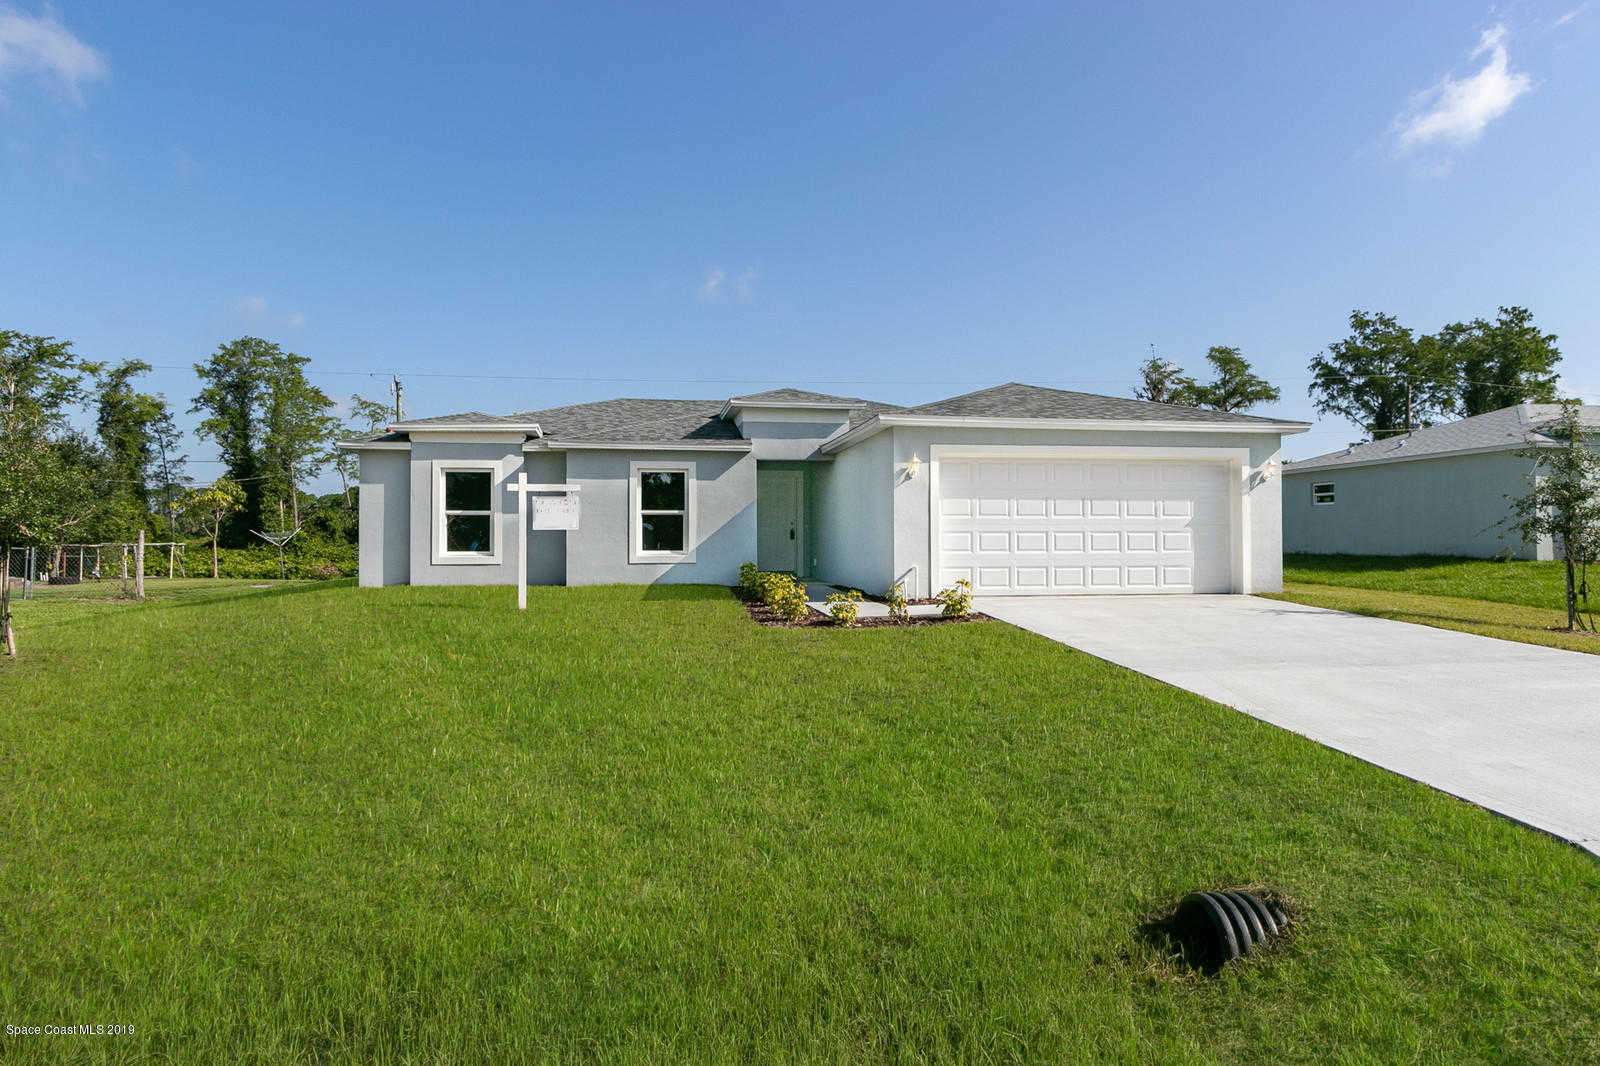 1443 Palau Street, Palm Bay, FL 32909 now has a new price of $199,400!